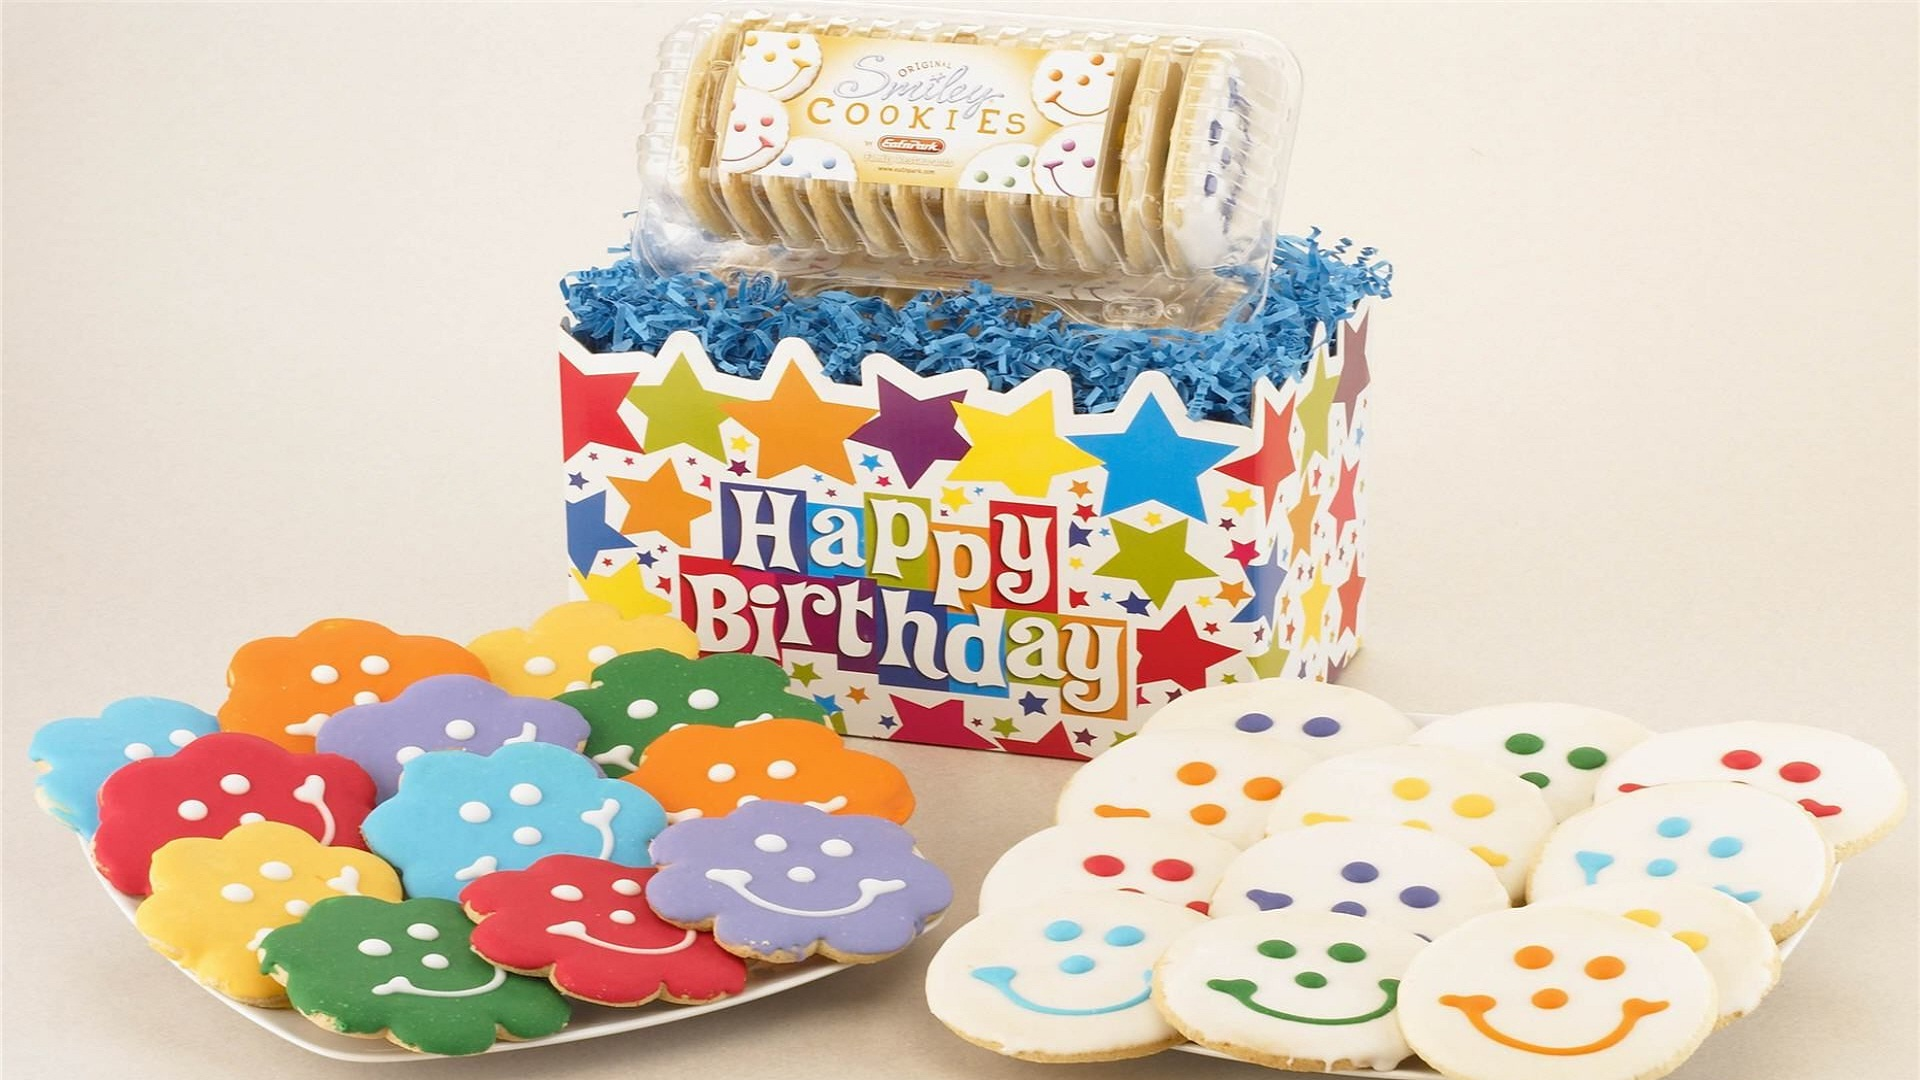 big birthday cake wallpaper ; Happy-birthday-cake-and-candies